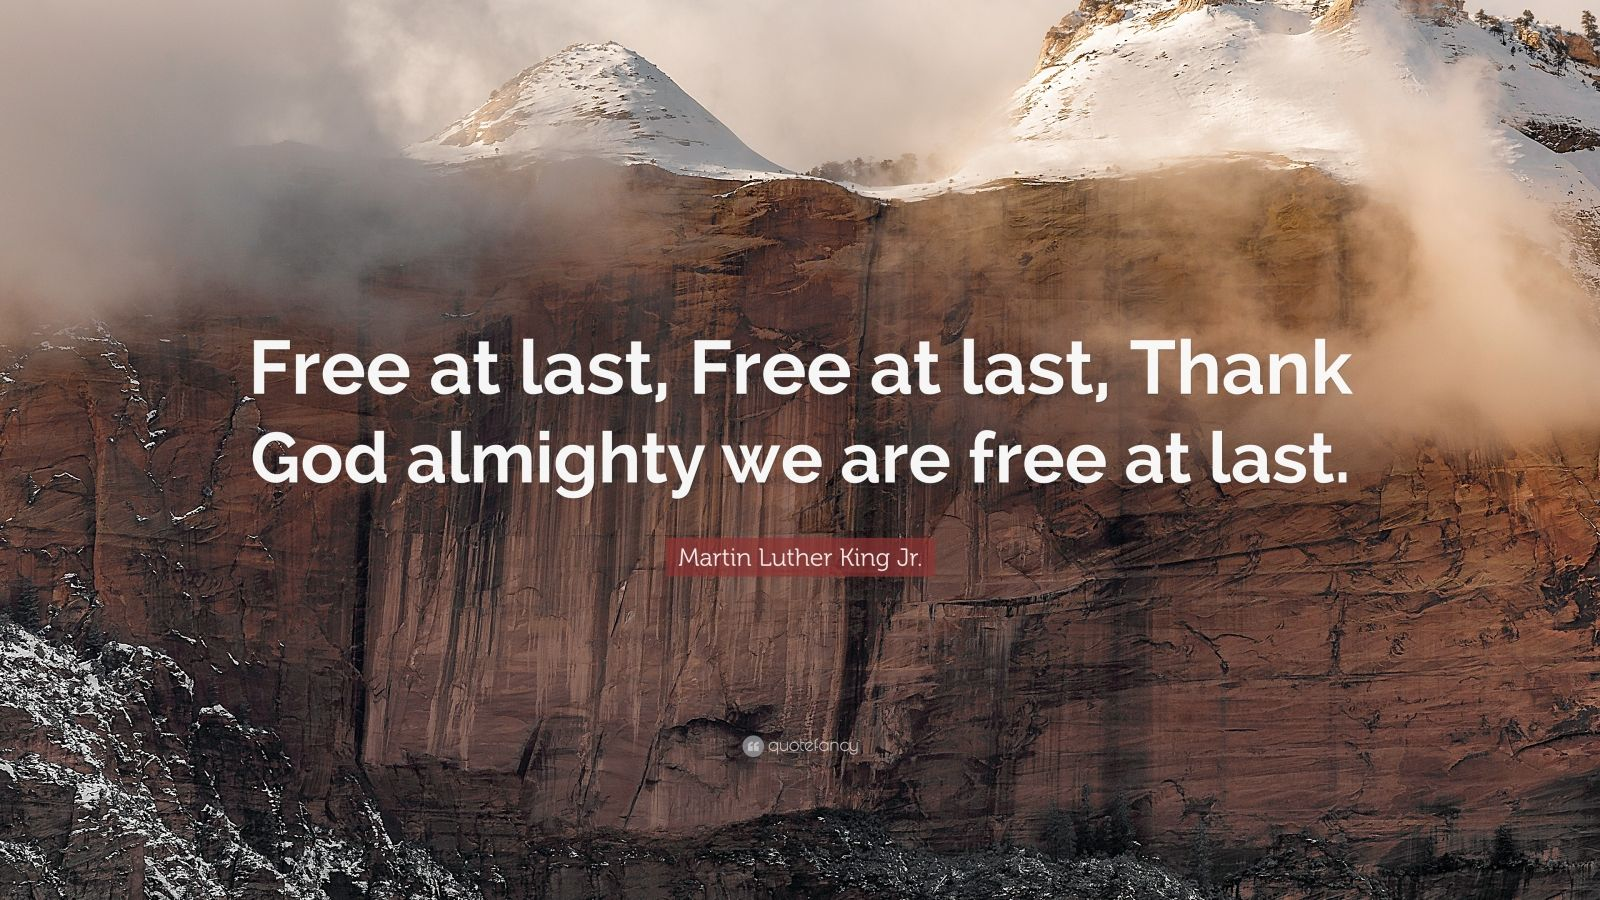 Martin Luther King Wallpaper Quotes Martin Luther King Jr Quote Free At Last Free At Last